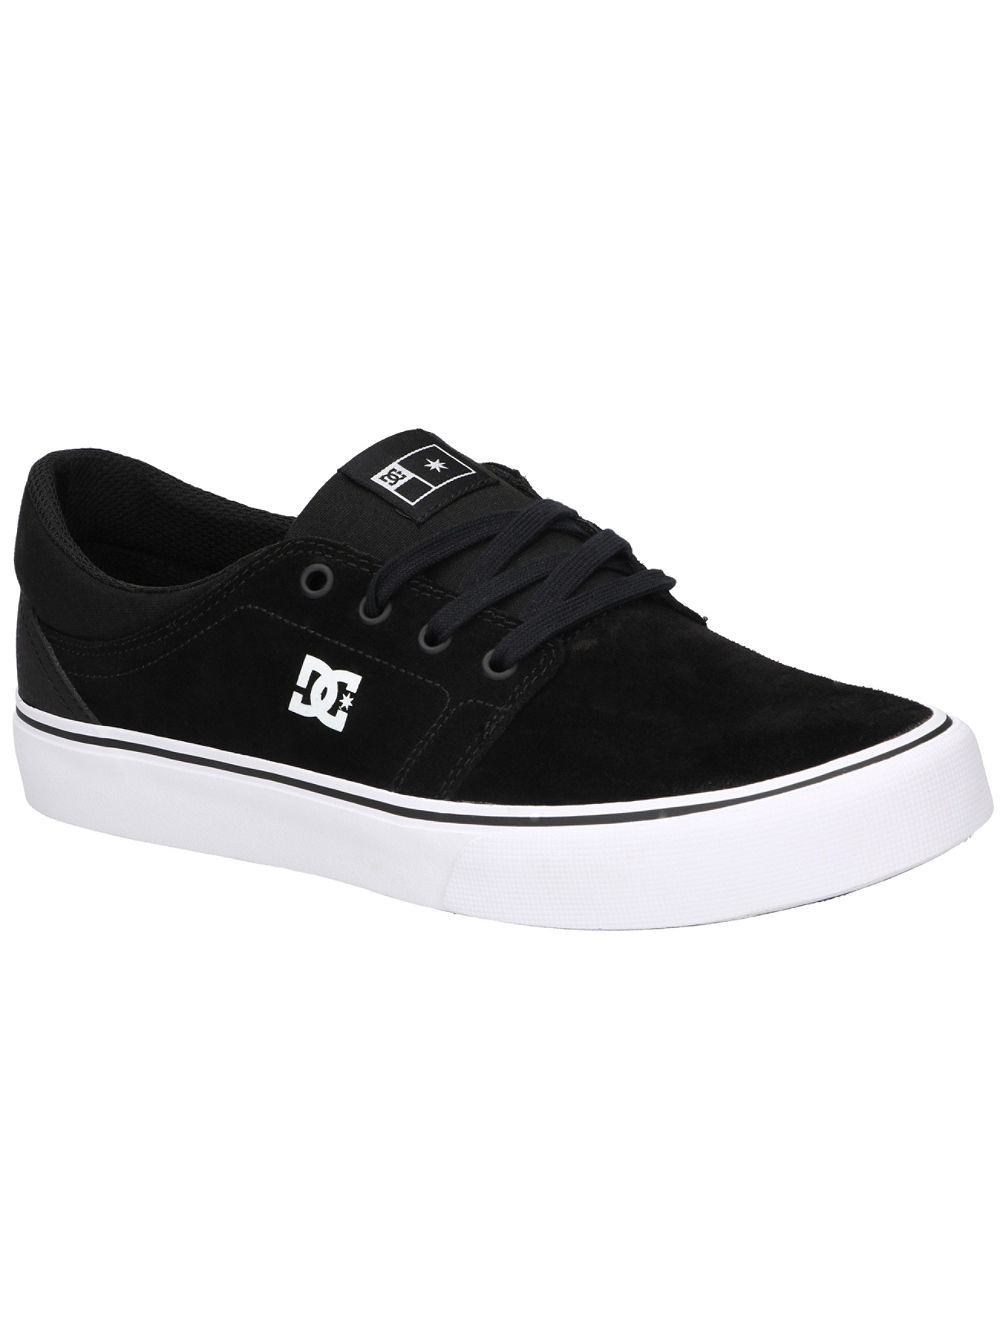 Trase S Skate Shoes